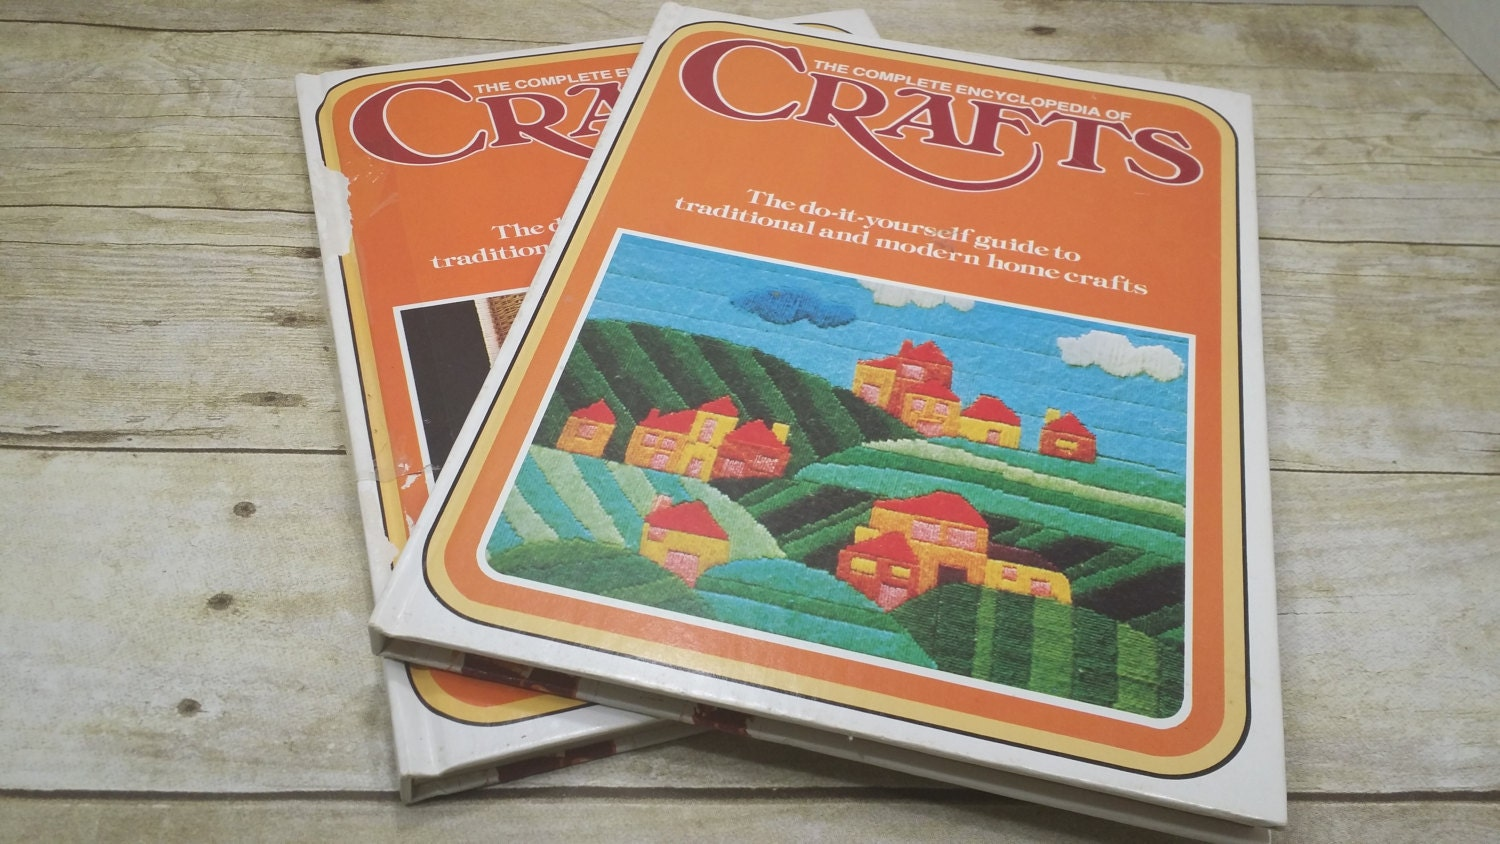 The complete encyclopedia of crafts volume 2 and 21 1975 vintage sold by randomgoodsbookroom solutioingenieria Image collections